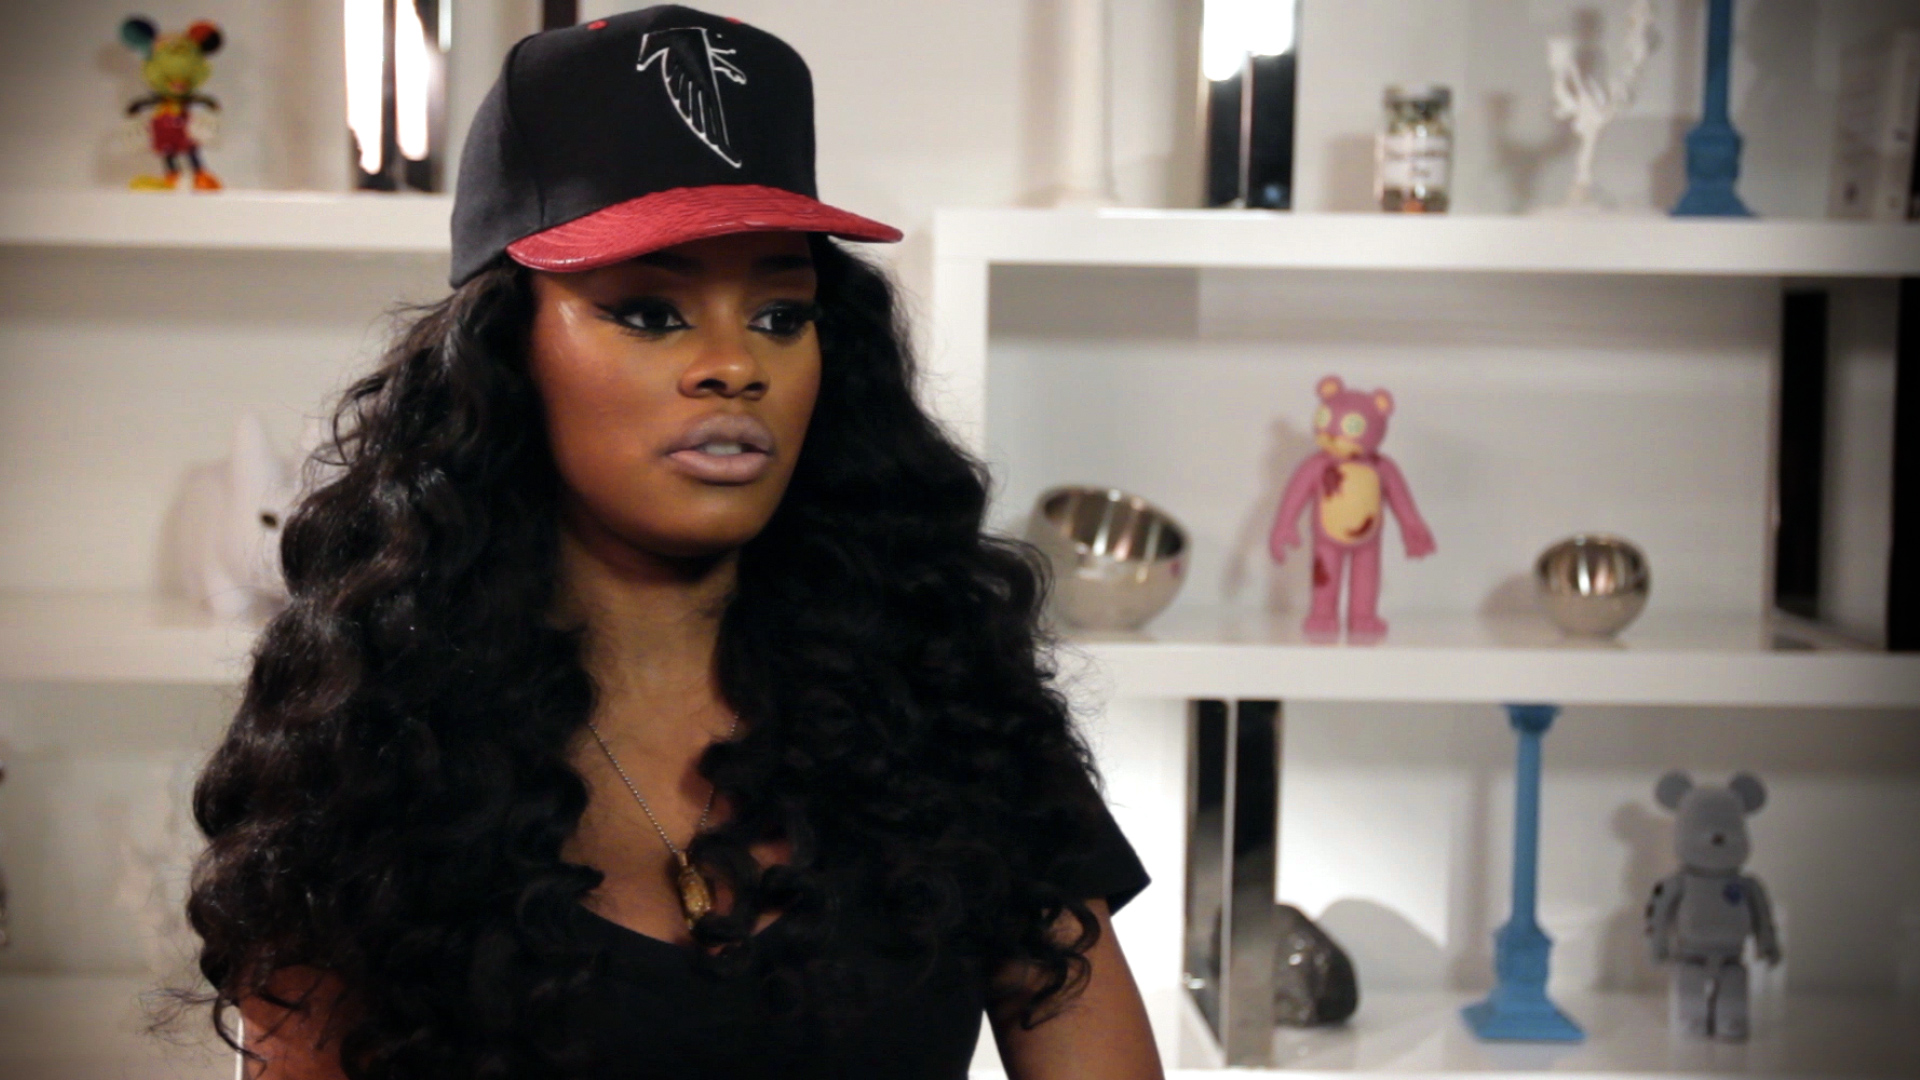 Finally The New Teyana Taylor Album Is Complete